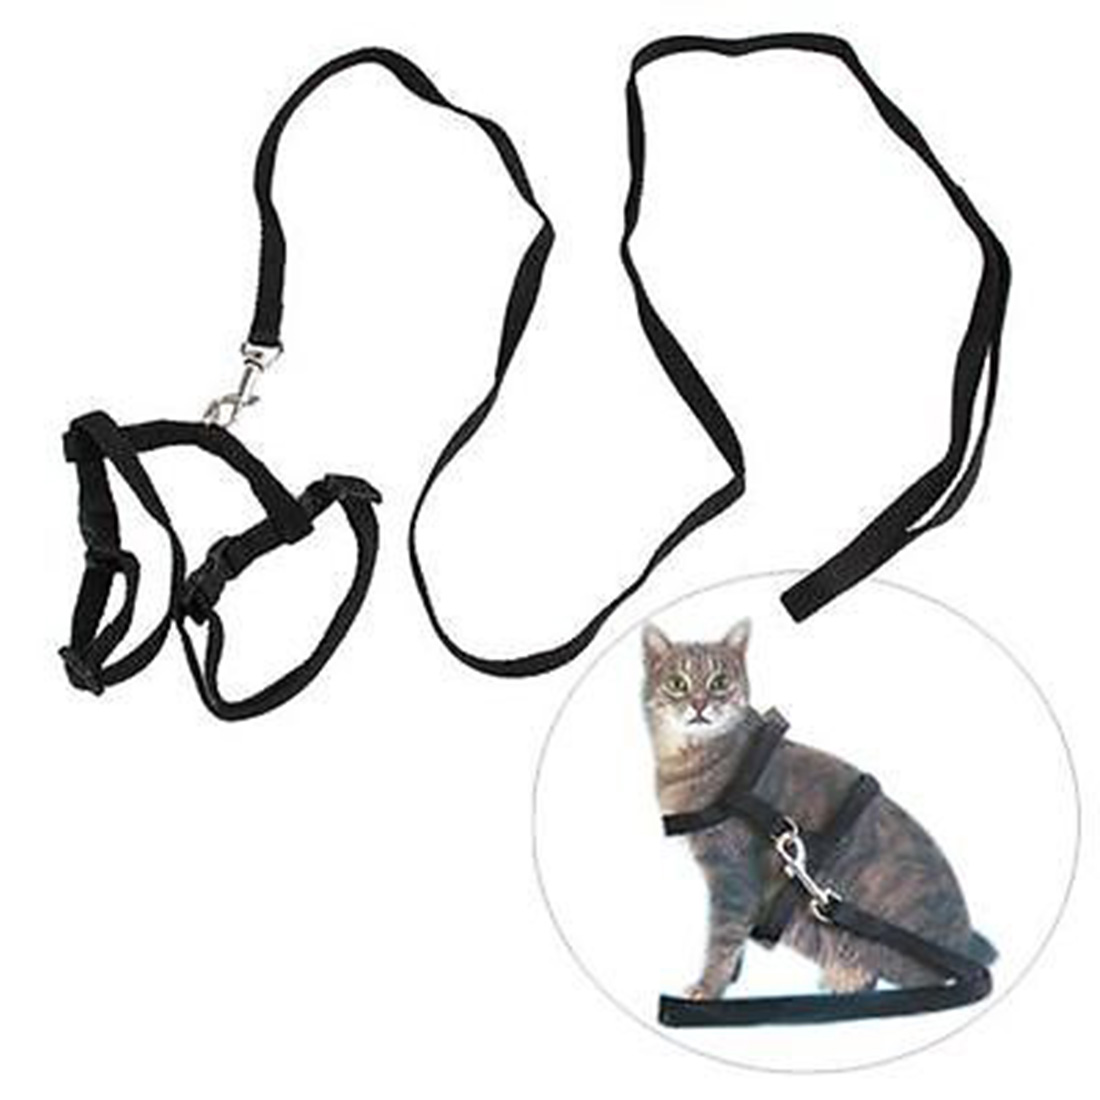 Cat Harness And Leash Nylon Products Animals Adjustable